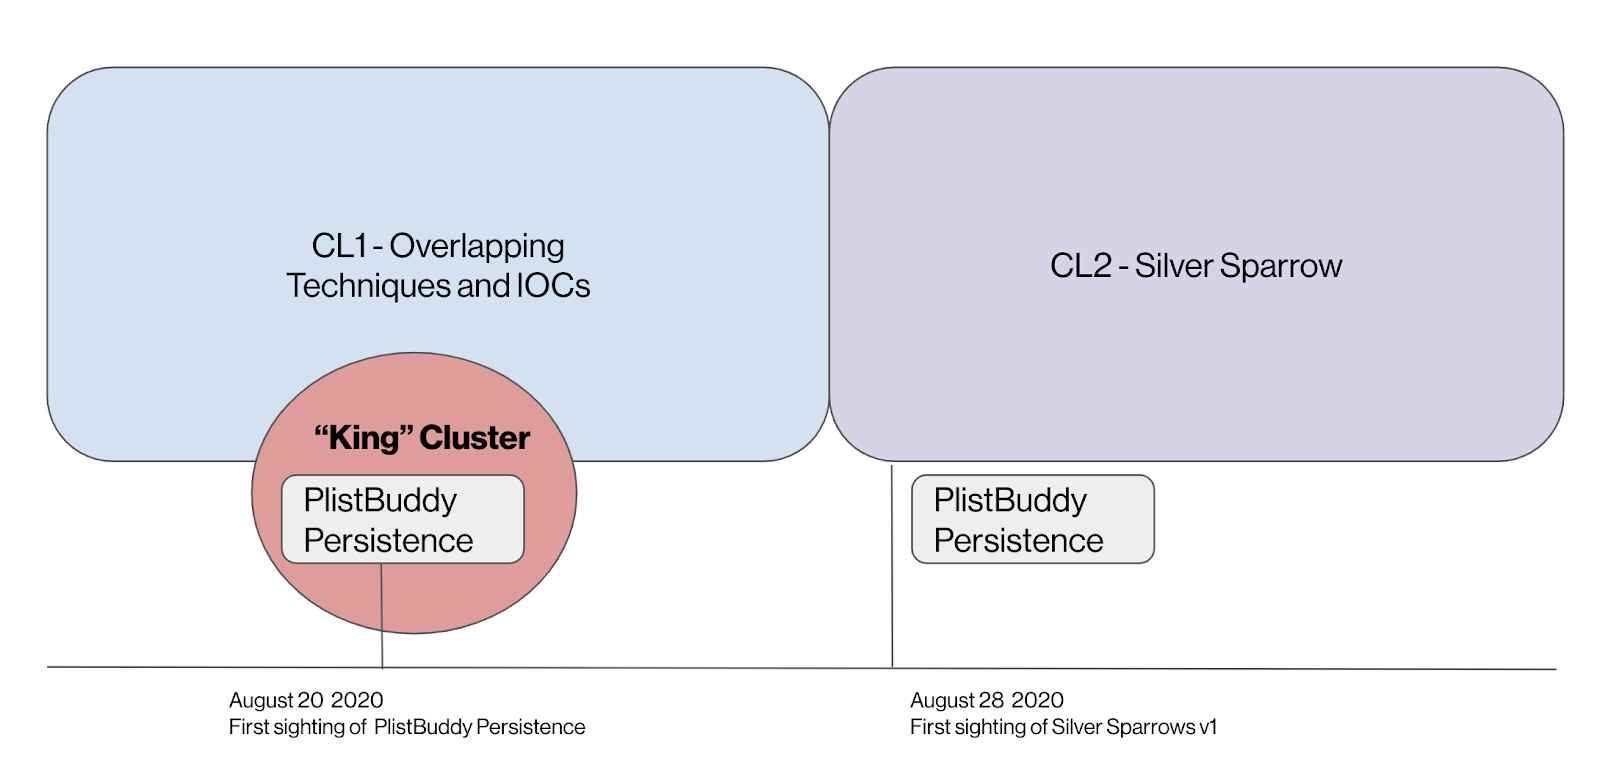 August 20, 2020 - First sighting of Plistbuddy, August 28, 2020 - First sighting of Silver Sparrow